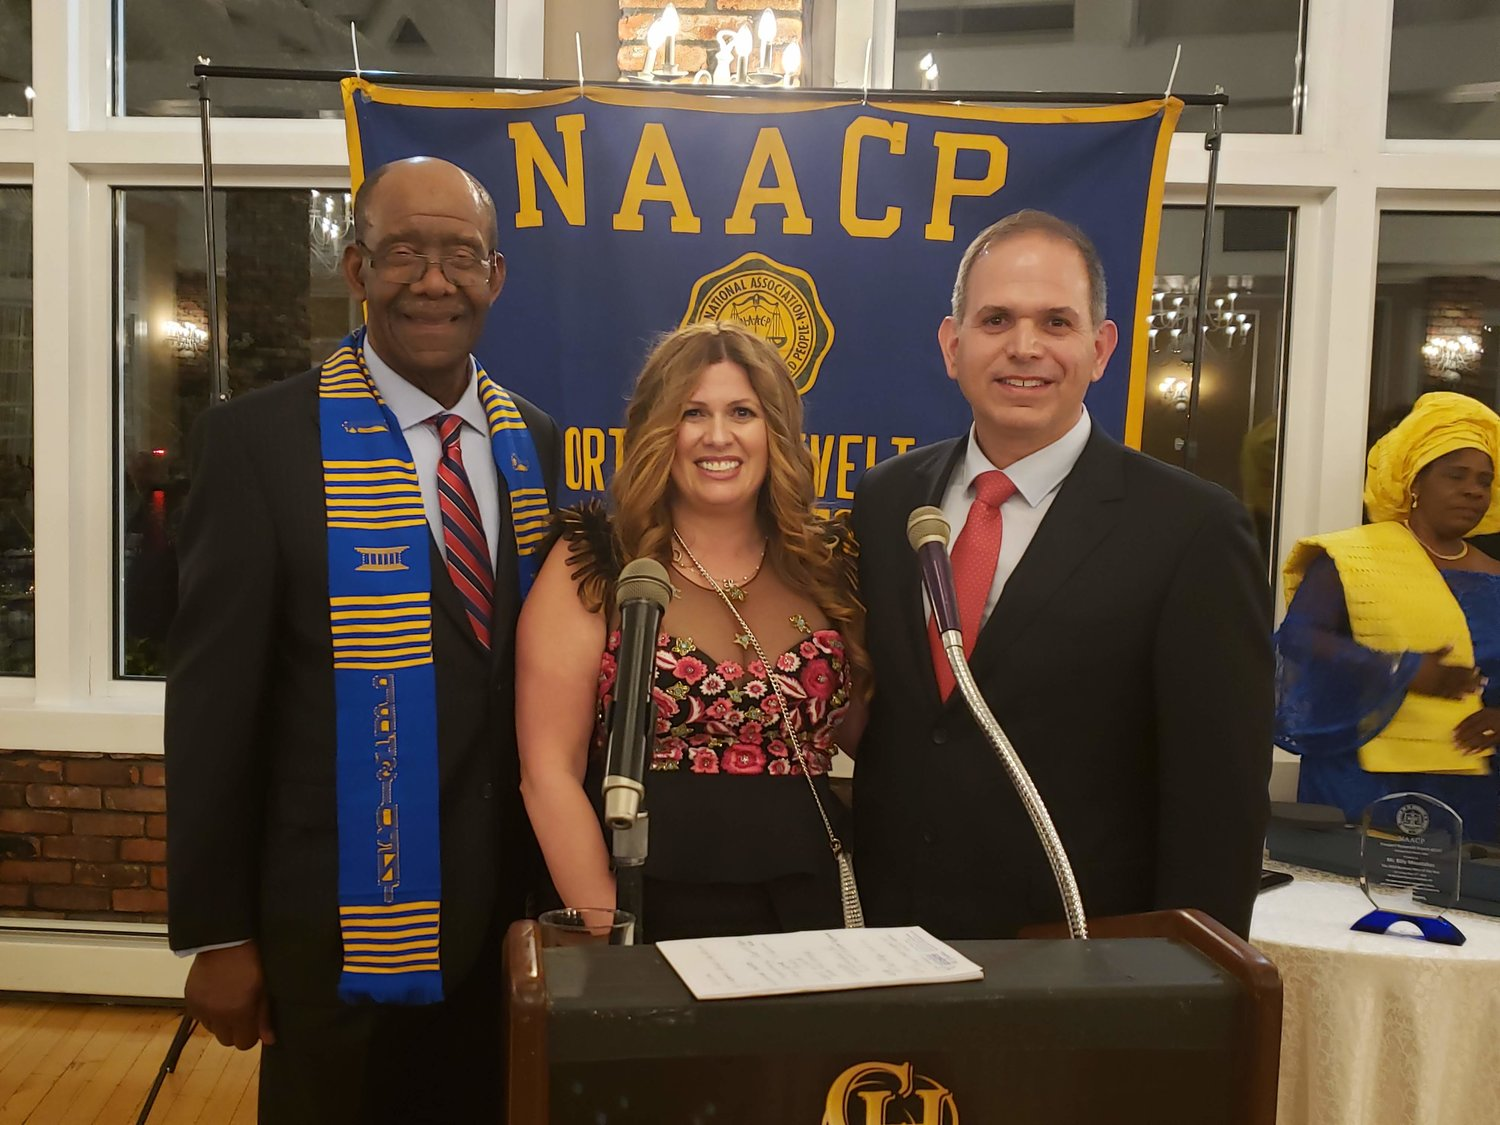 Imperial Diner owners — brother, Bill Moustakas, right, and sister Lana Moustakas Manetto, center, were awarded as the 2019 Business Award from the NAACP and presented with their award by president Douglas Mayers, left.